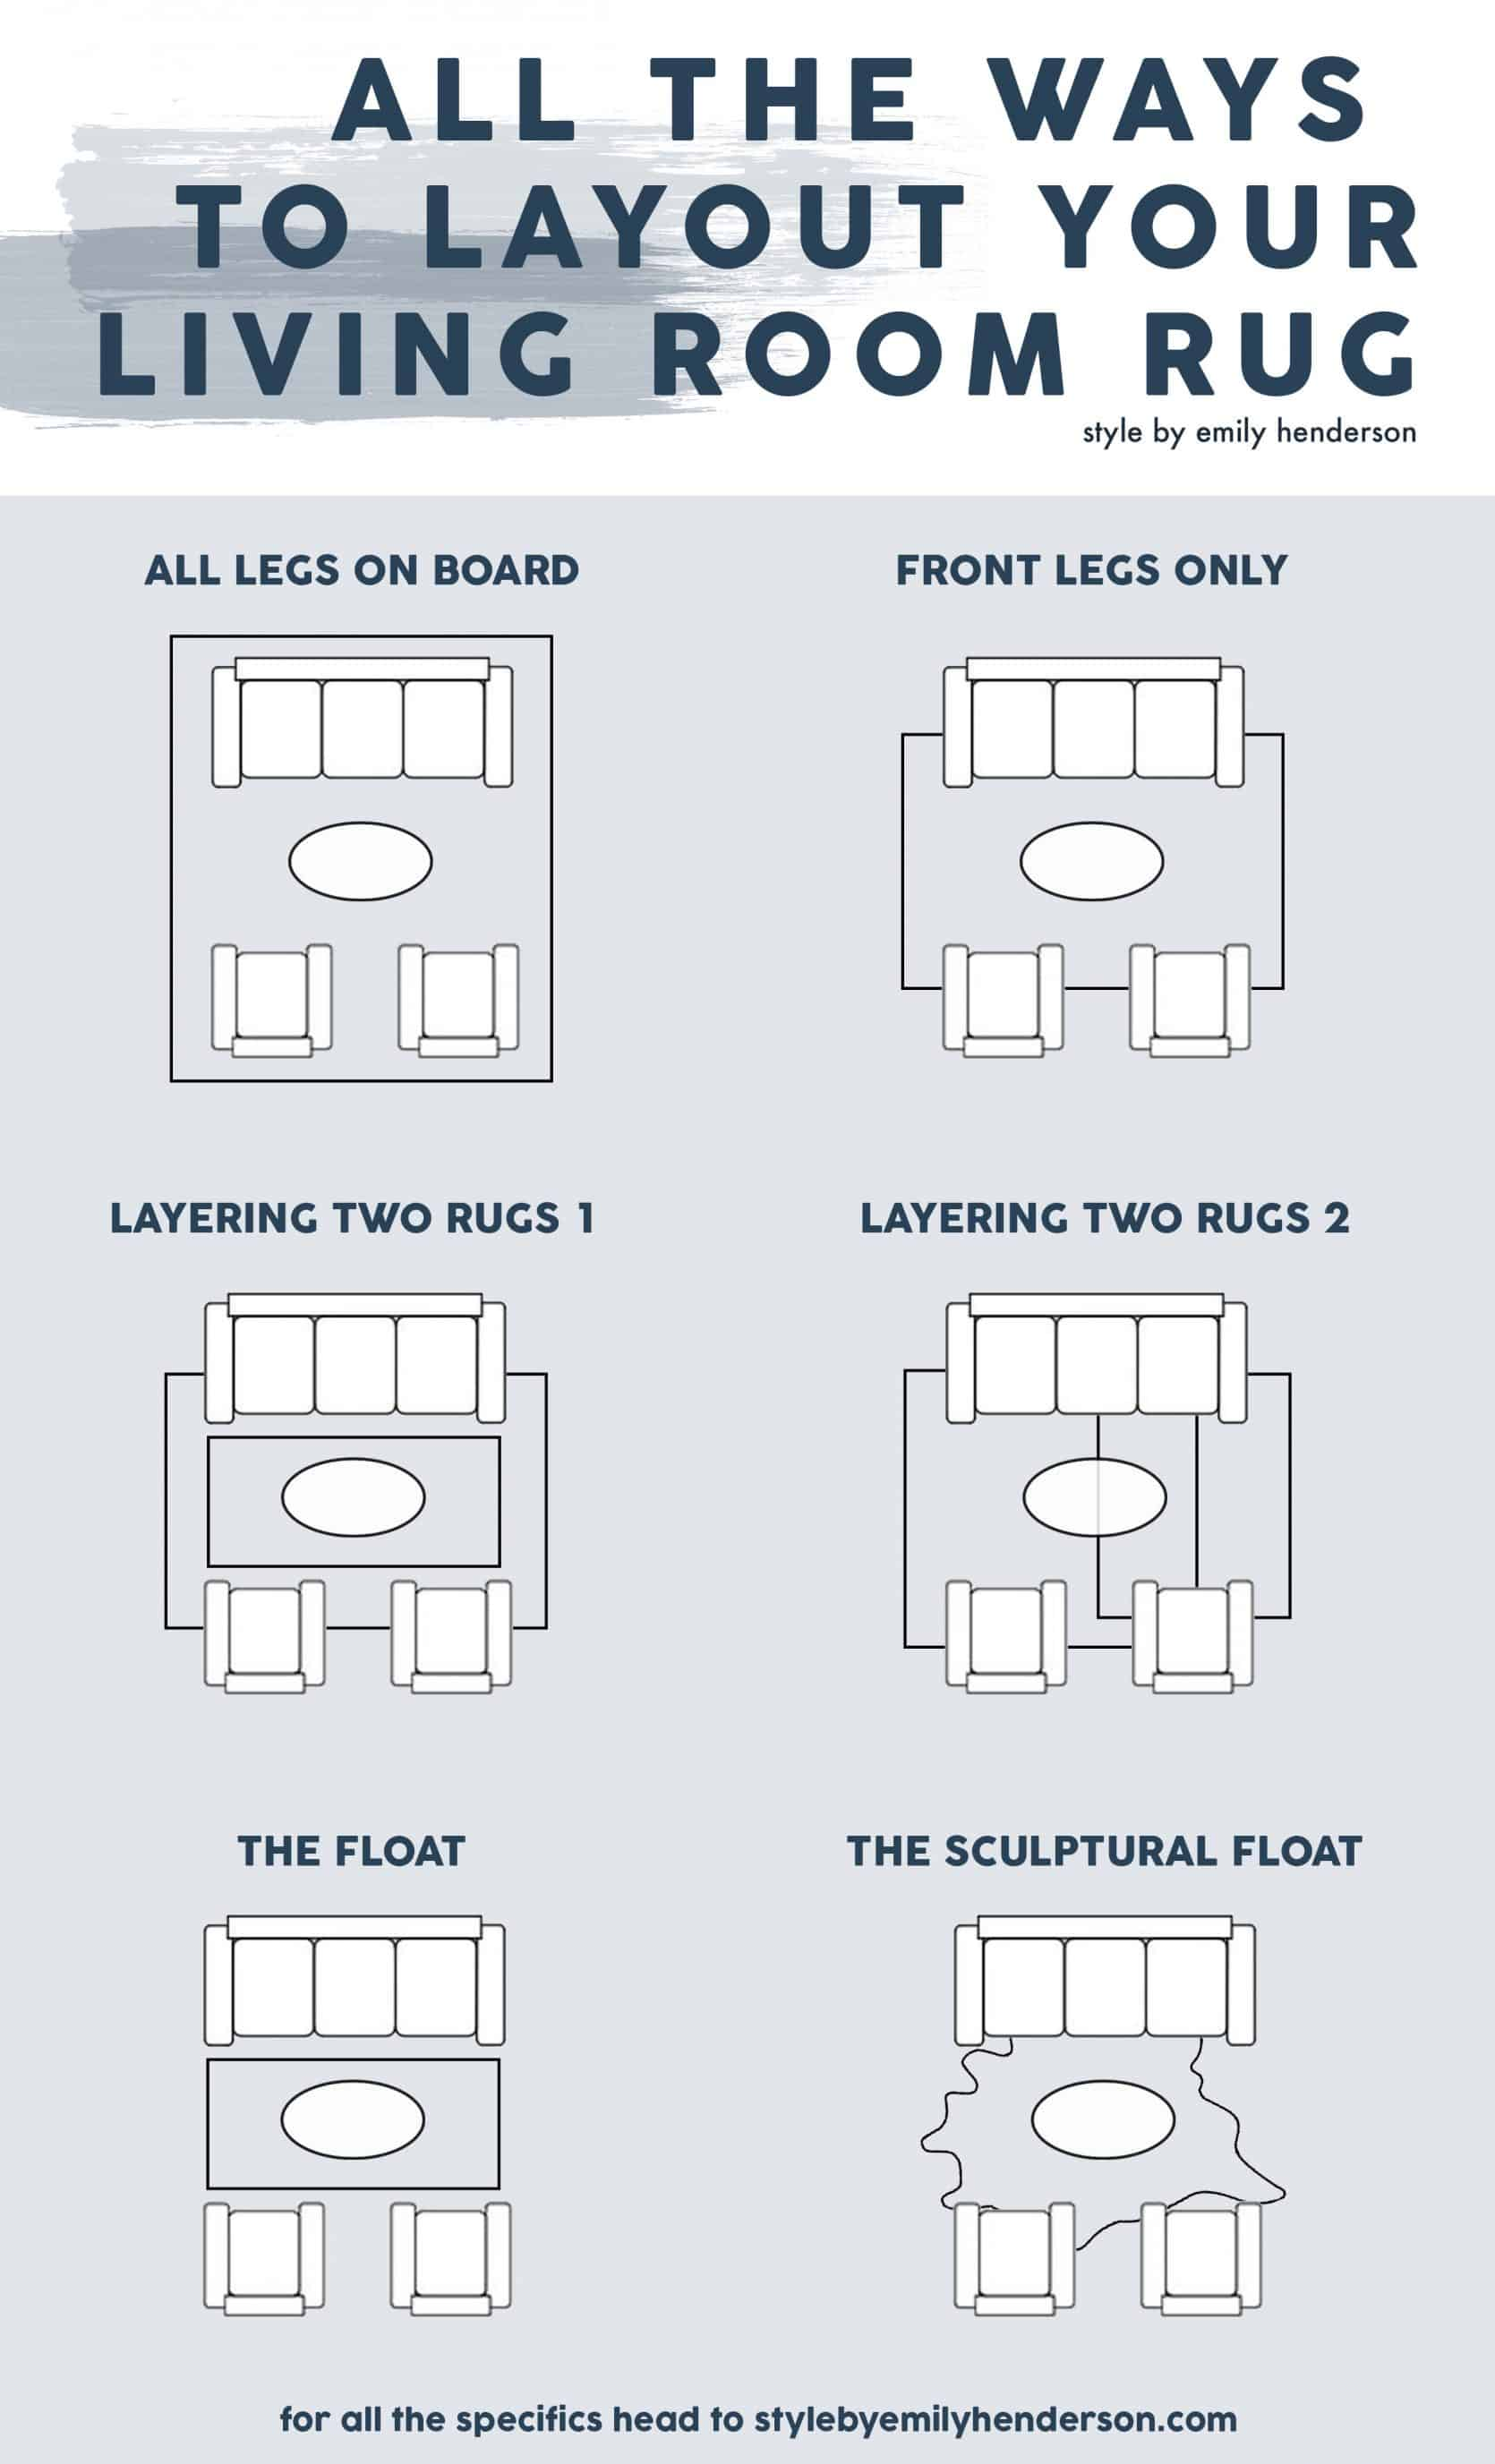 How To Choose The Right Rug Size For Your Living Room 5 Formulas Guaranteed To Work Emily Henderson